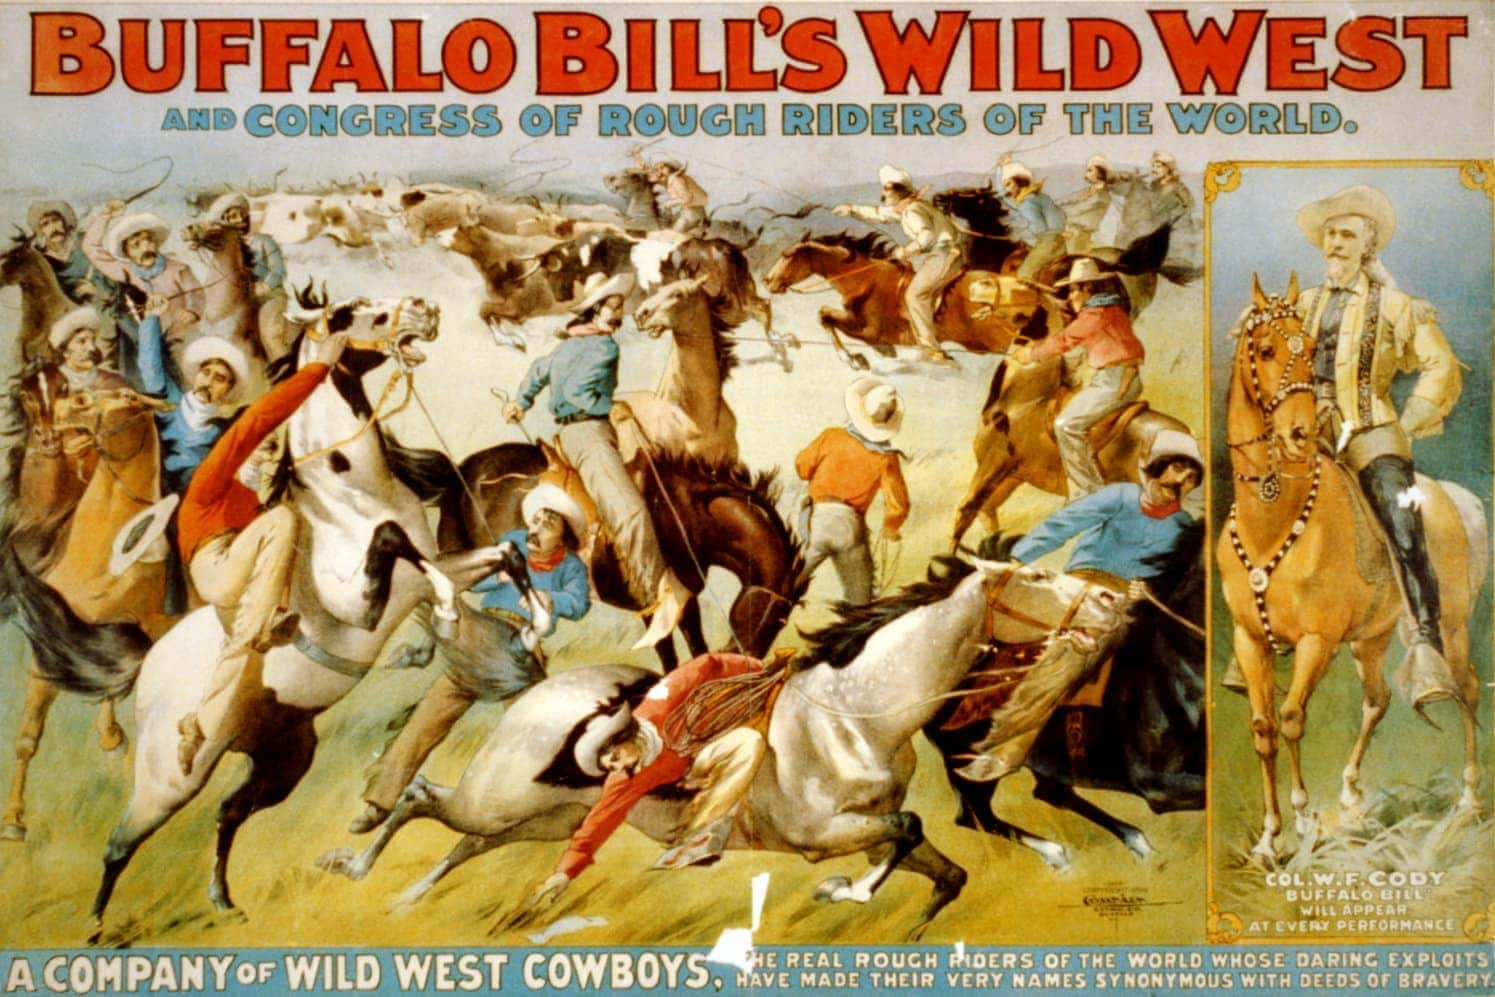 Buffalo Bill's Wild West & Congress of Rough Riders of the World (1899)